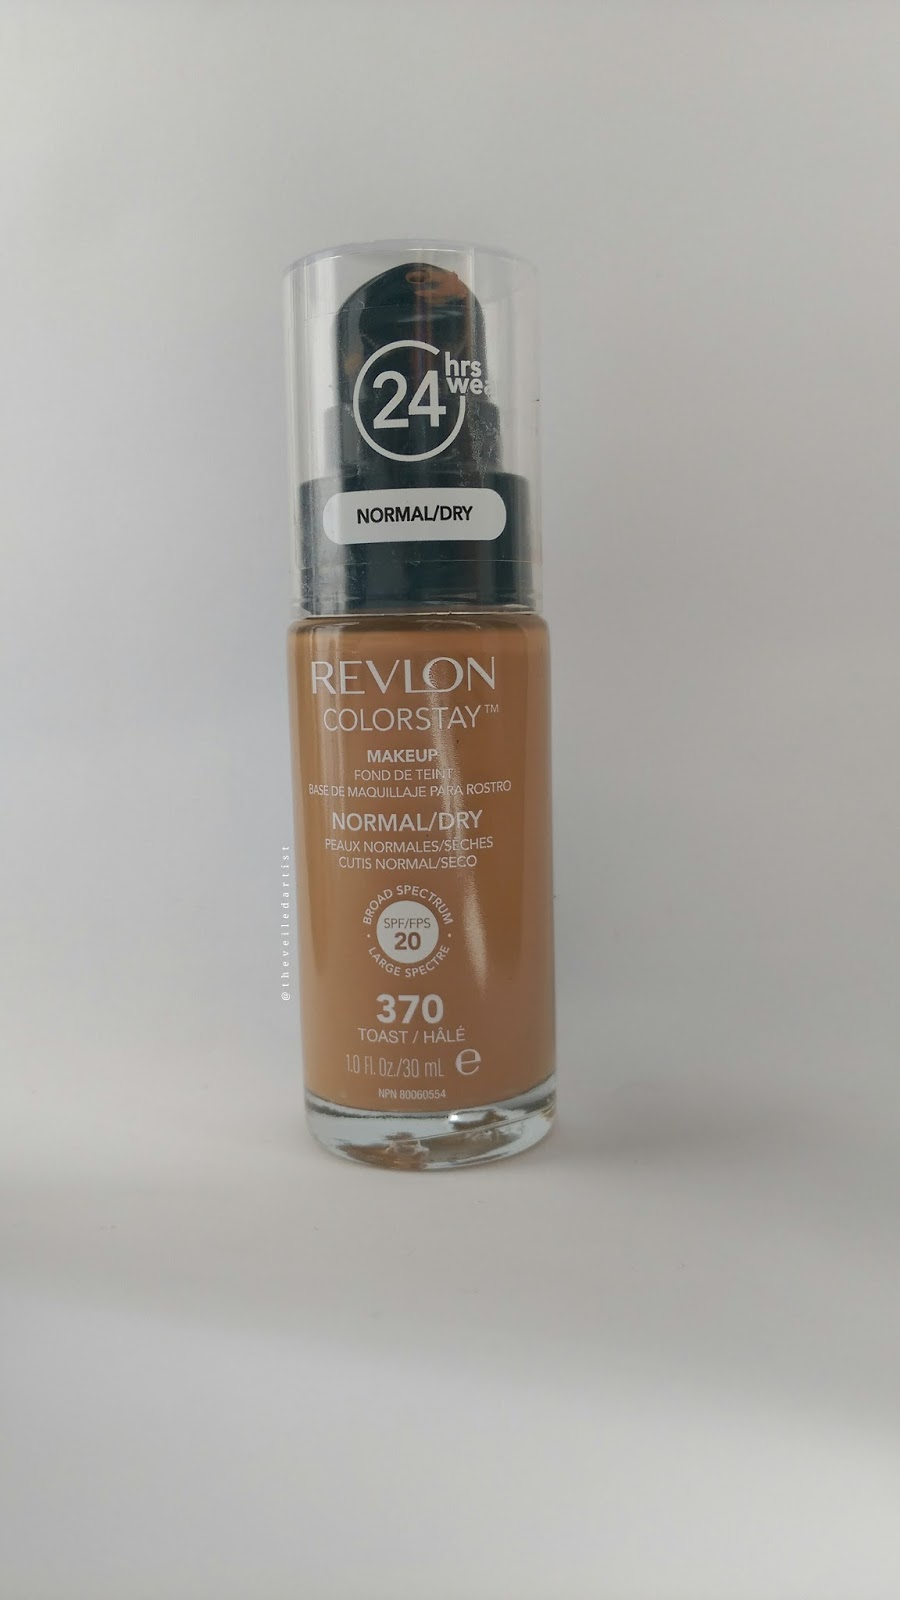 Revlon Colorstay Foundation for Normal/Dry Skin in Toast Review and Swatches